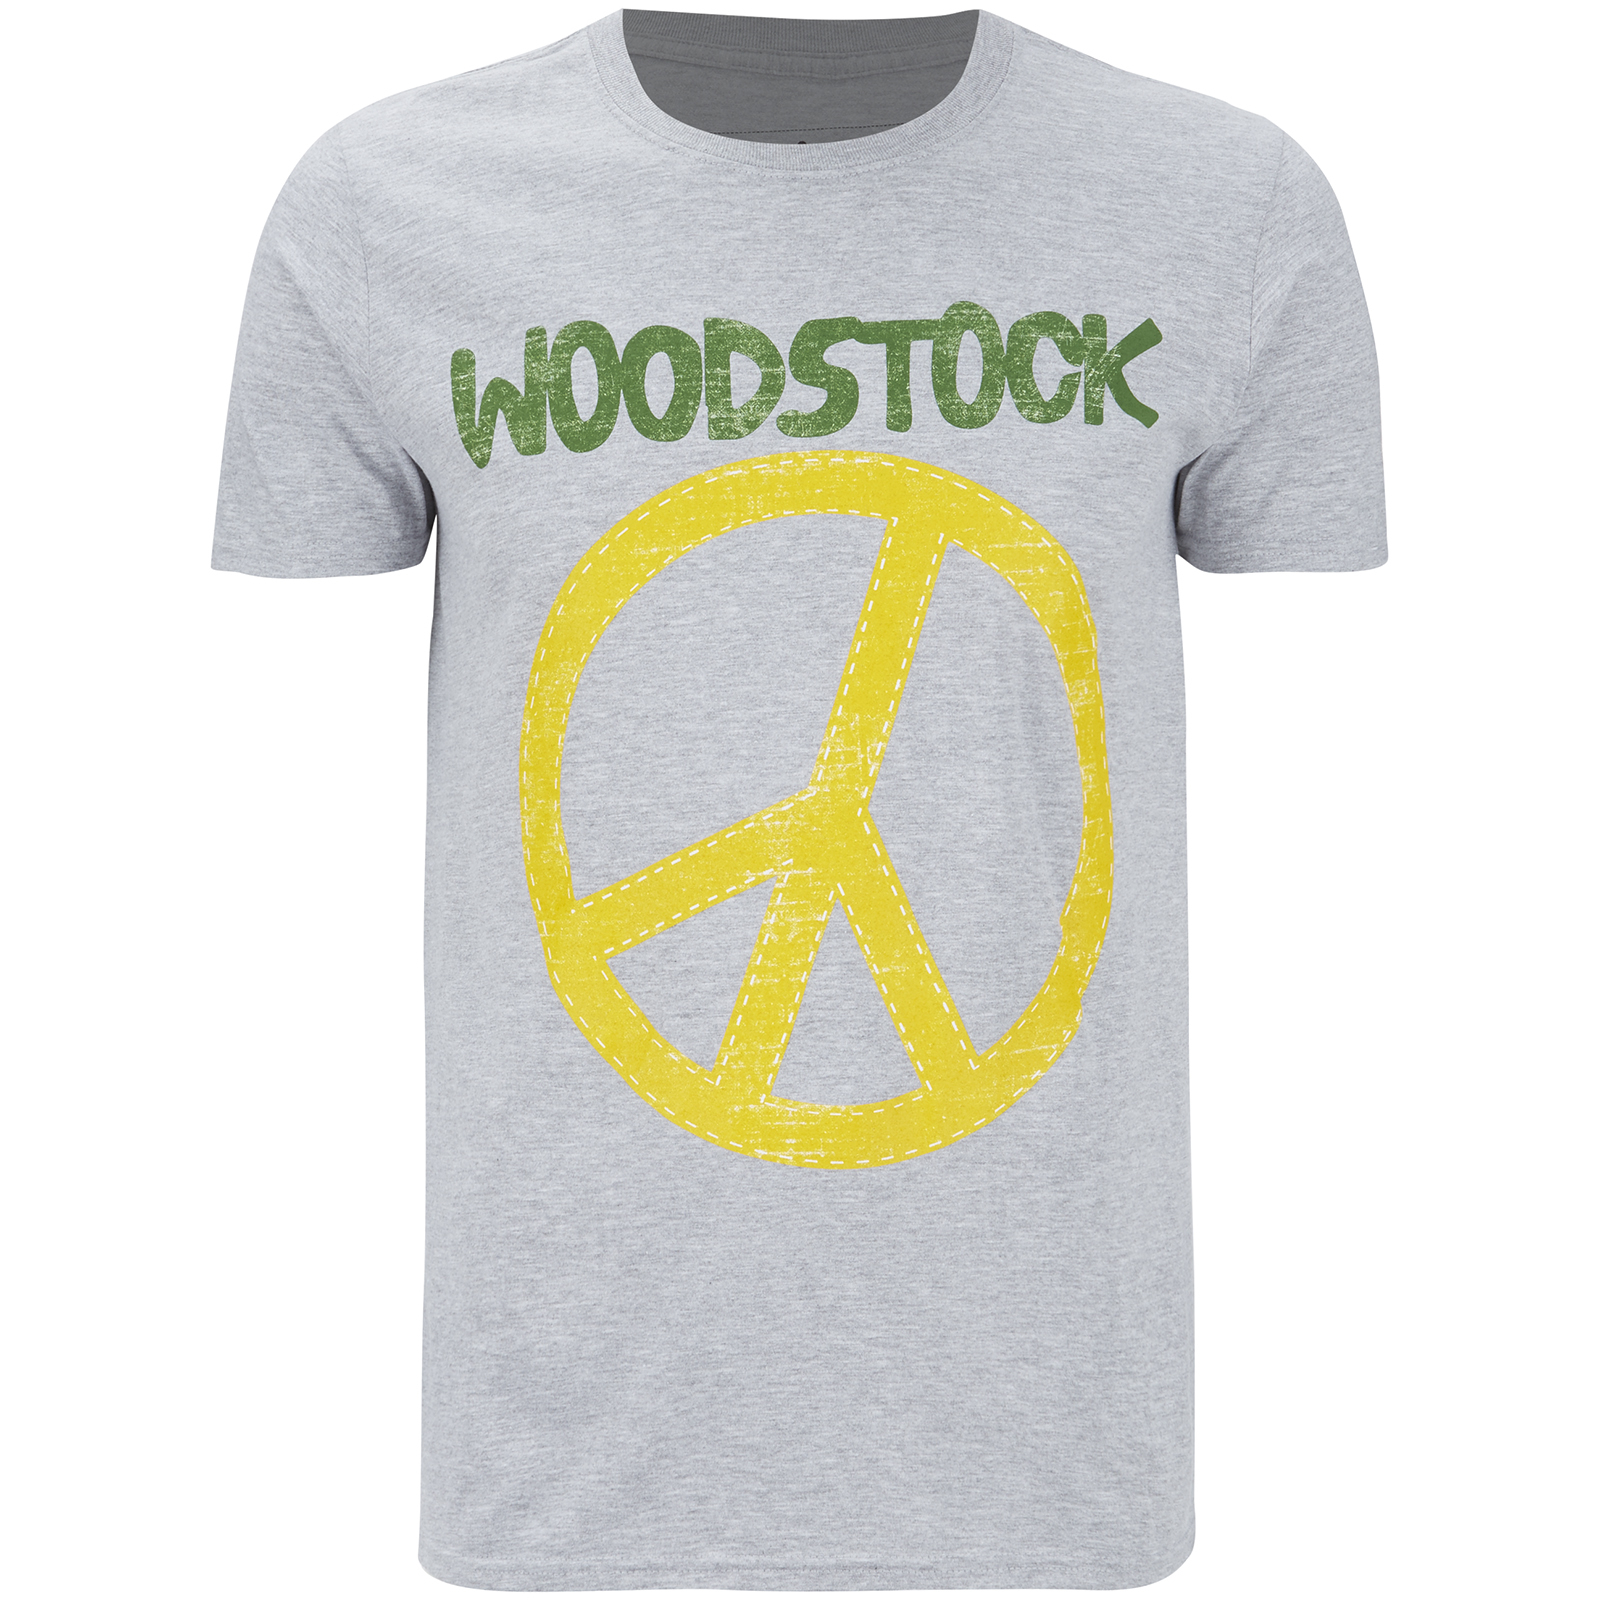 Woodstock Men